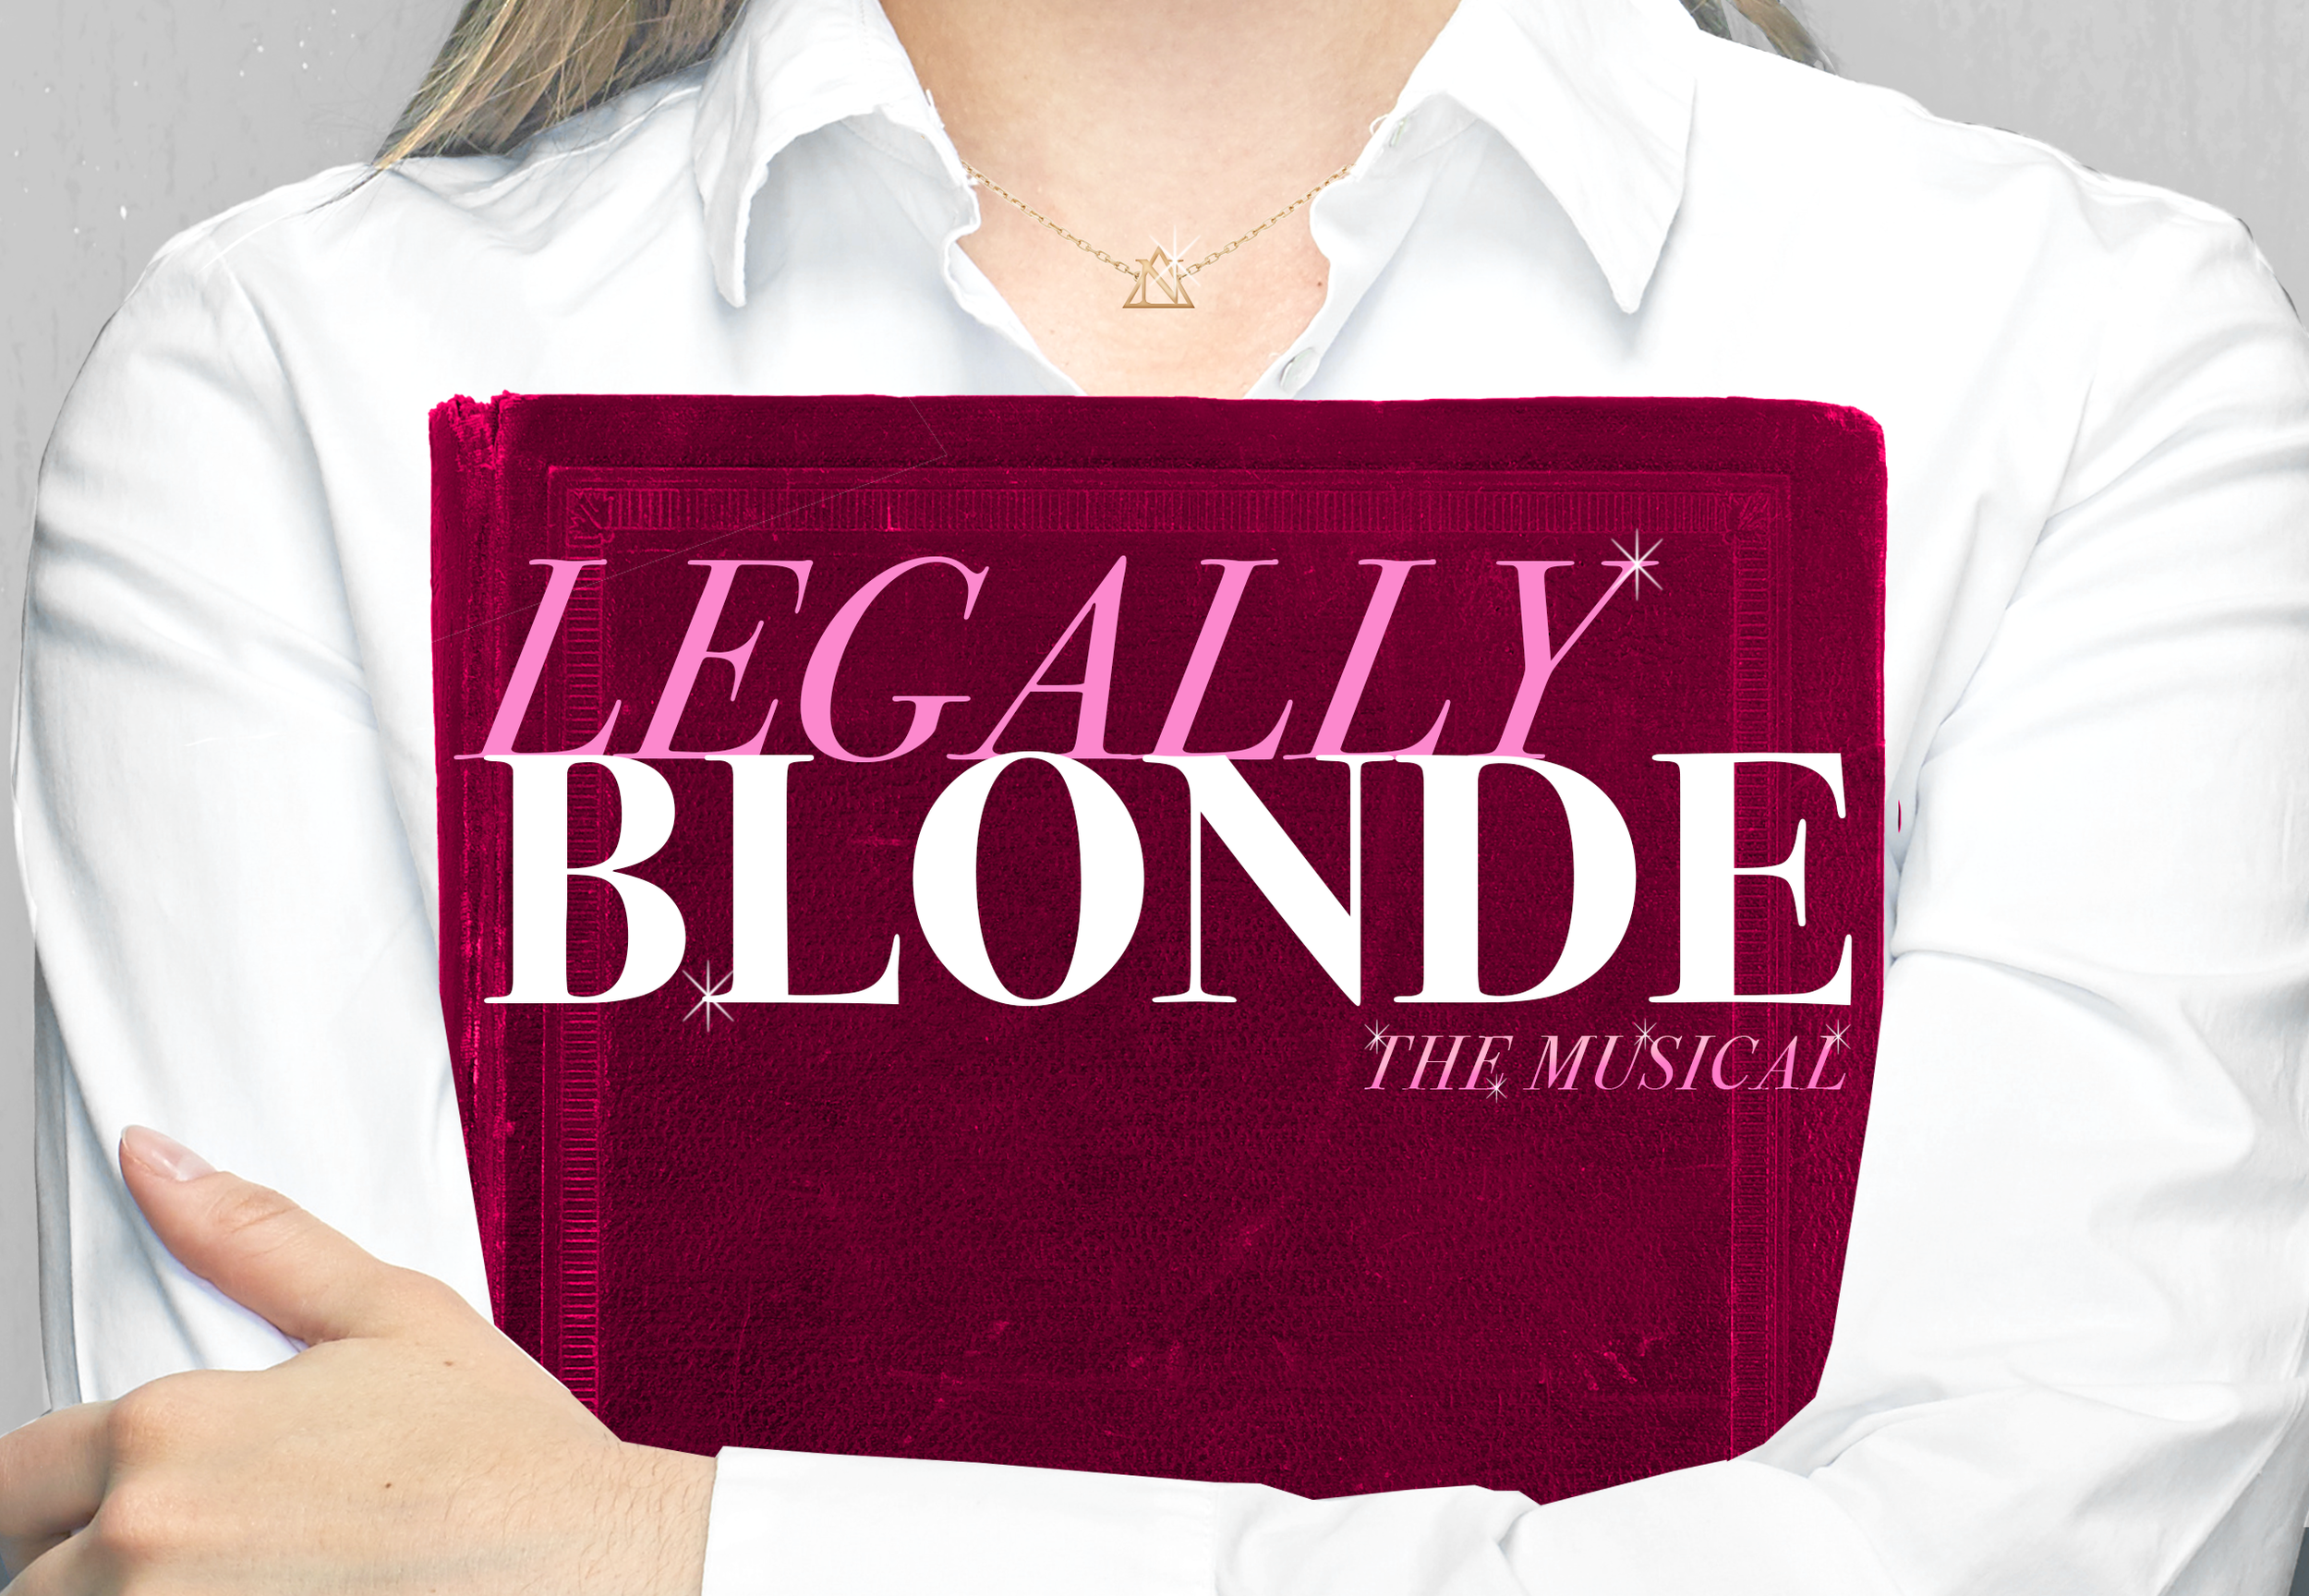 LegallyBlonde.png